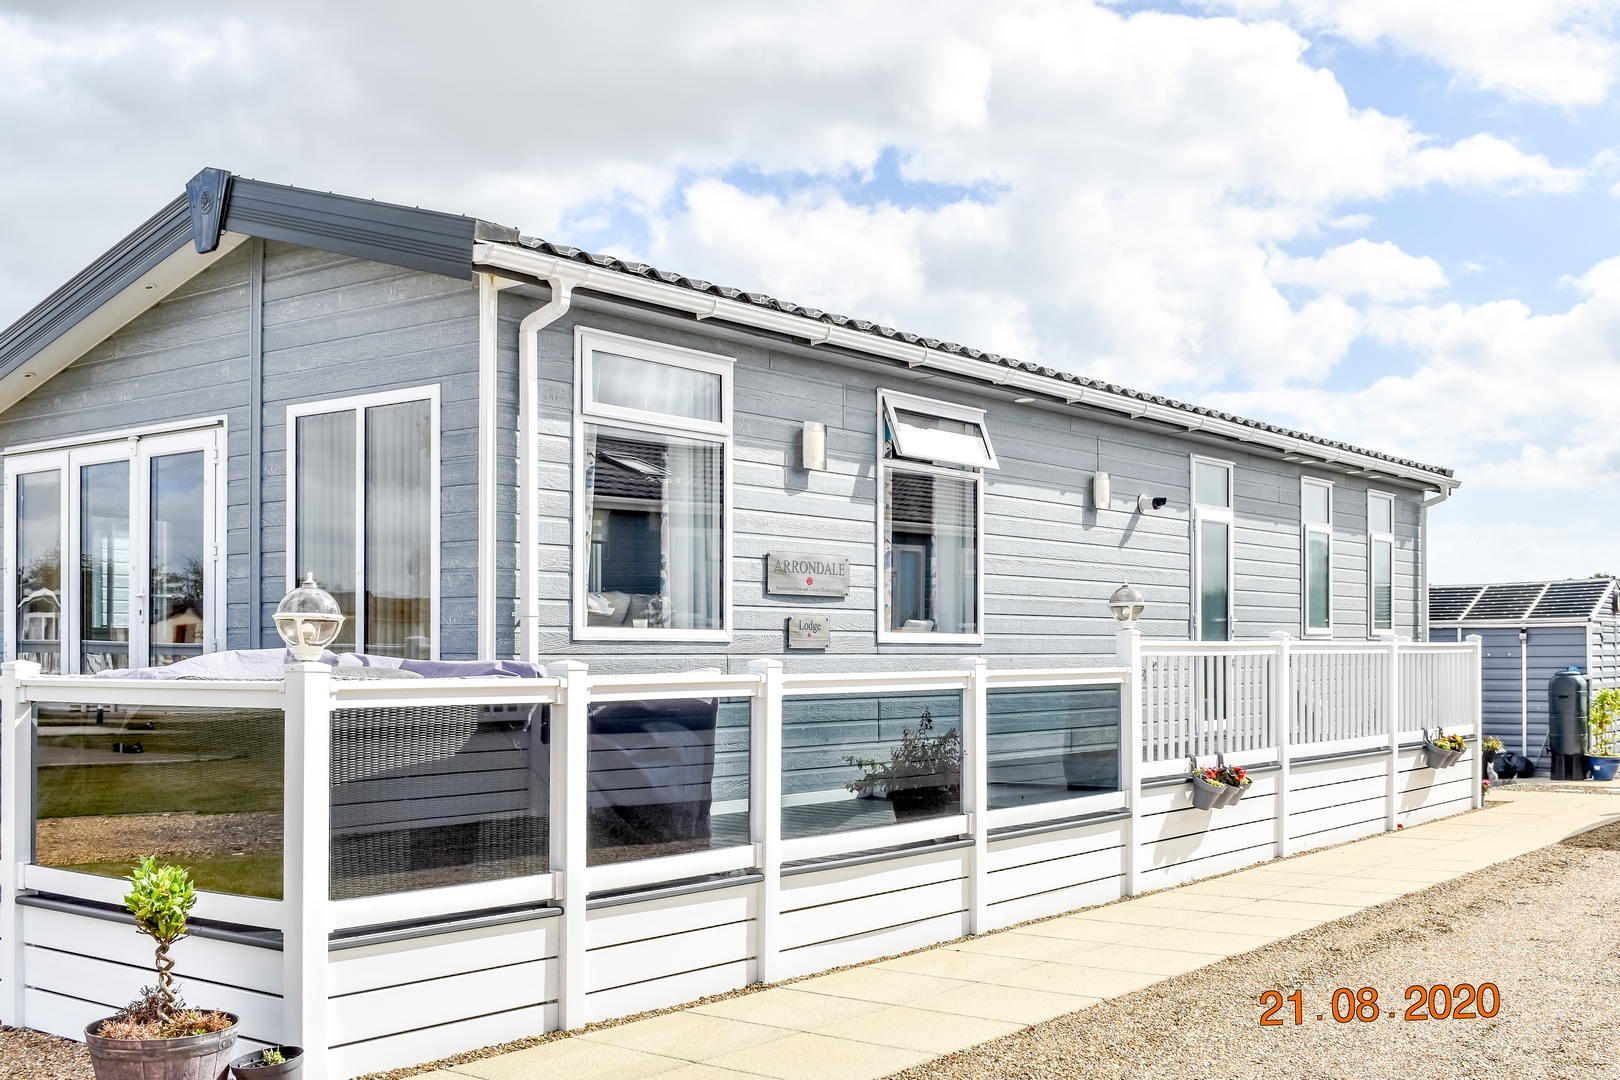 Preview of the first image of The Hollies Holiday Park, Suffolk.